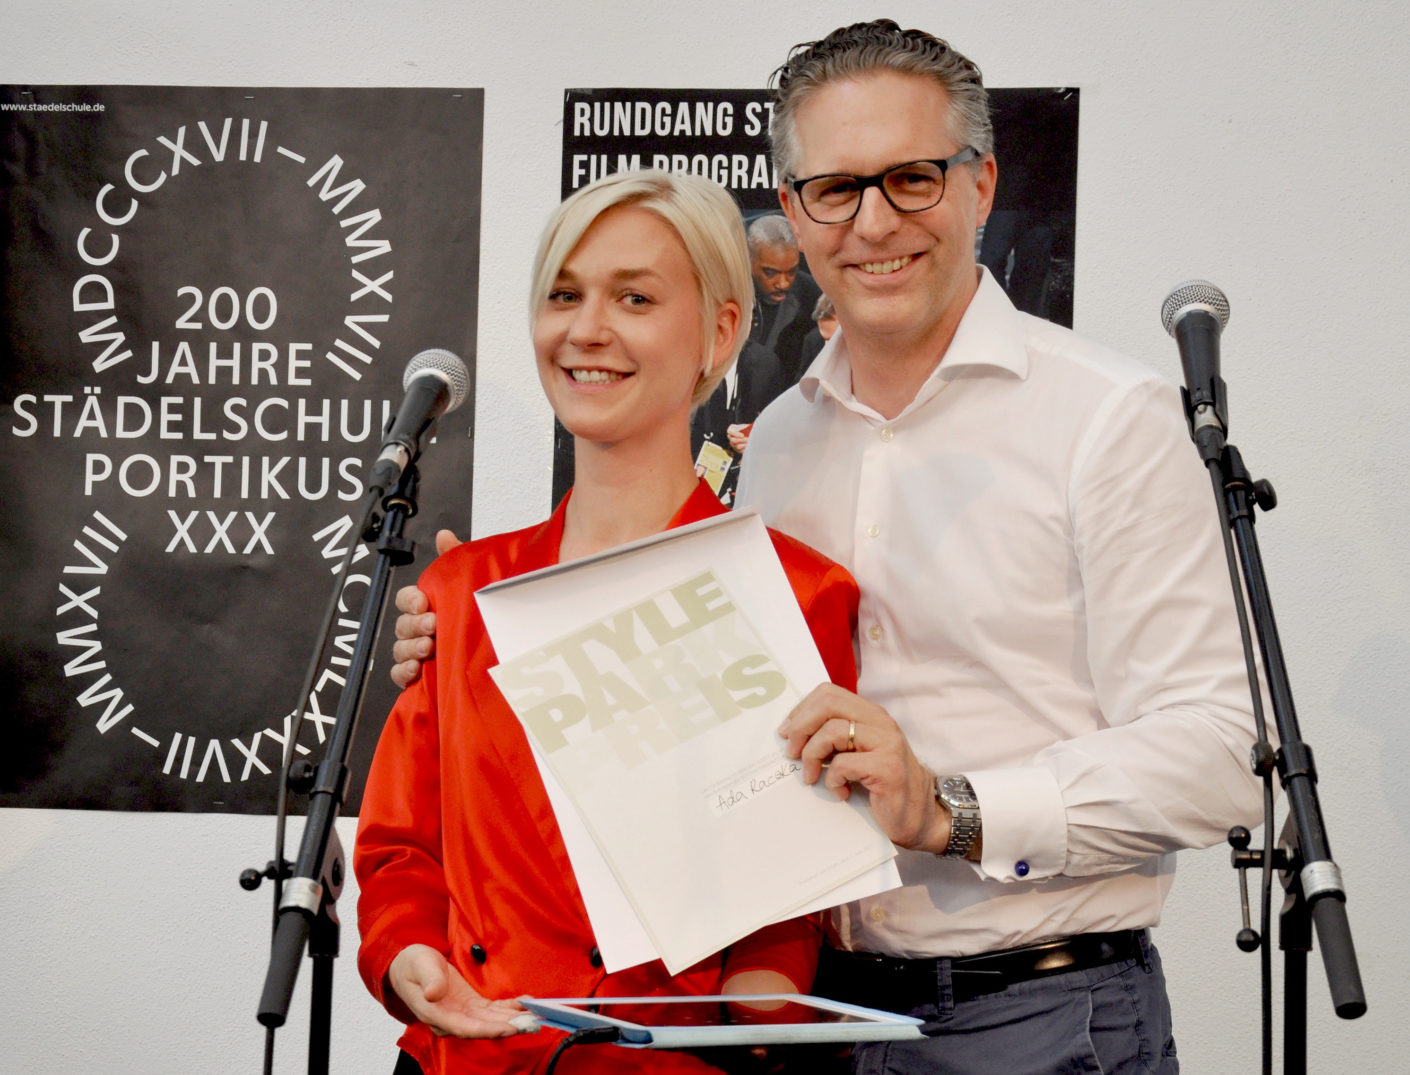 Stylepark donate an award at Rundgang at Staedelschule